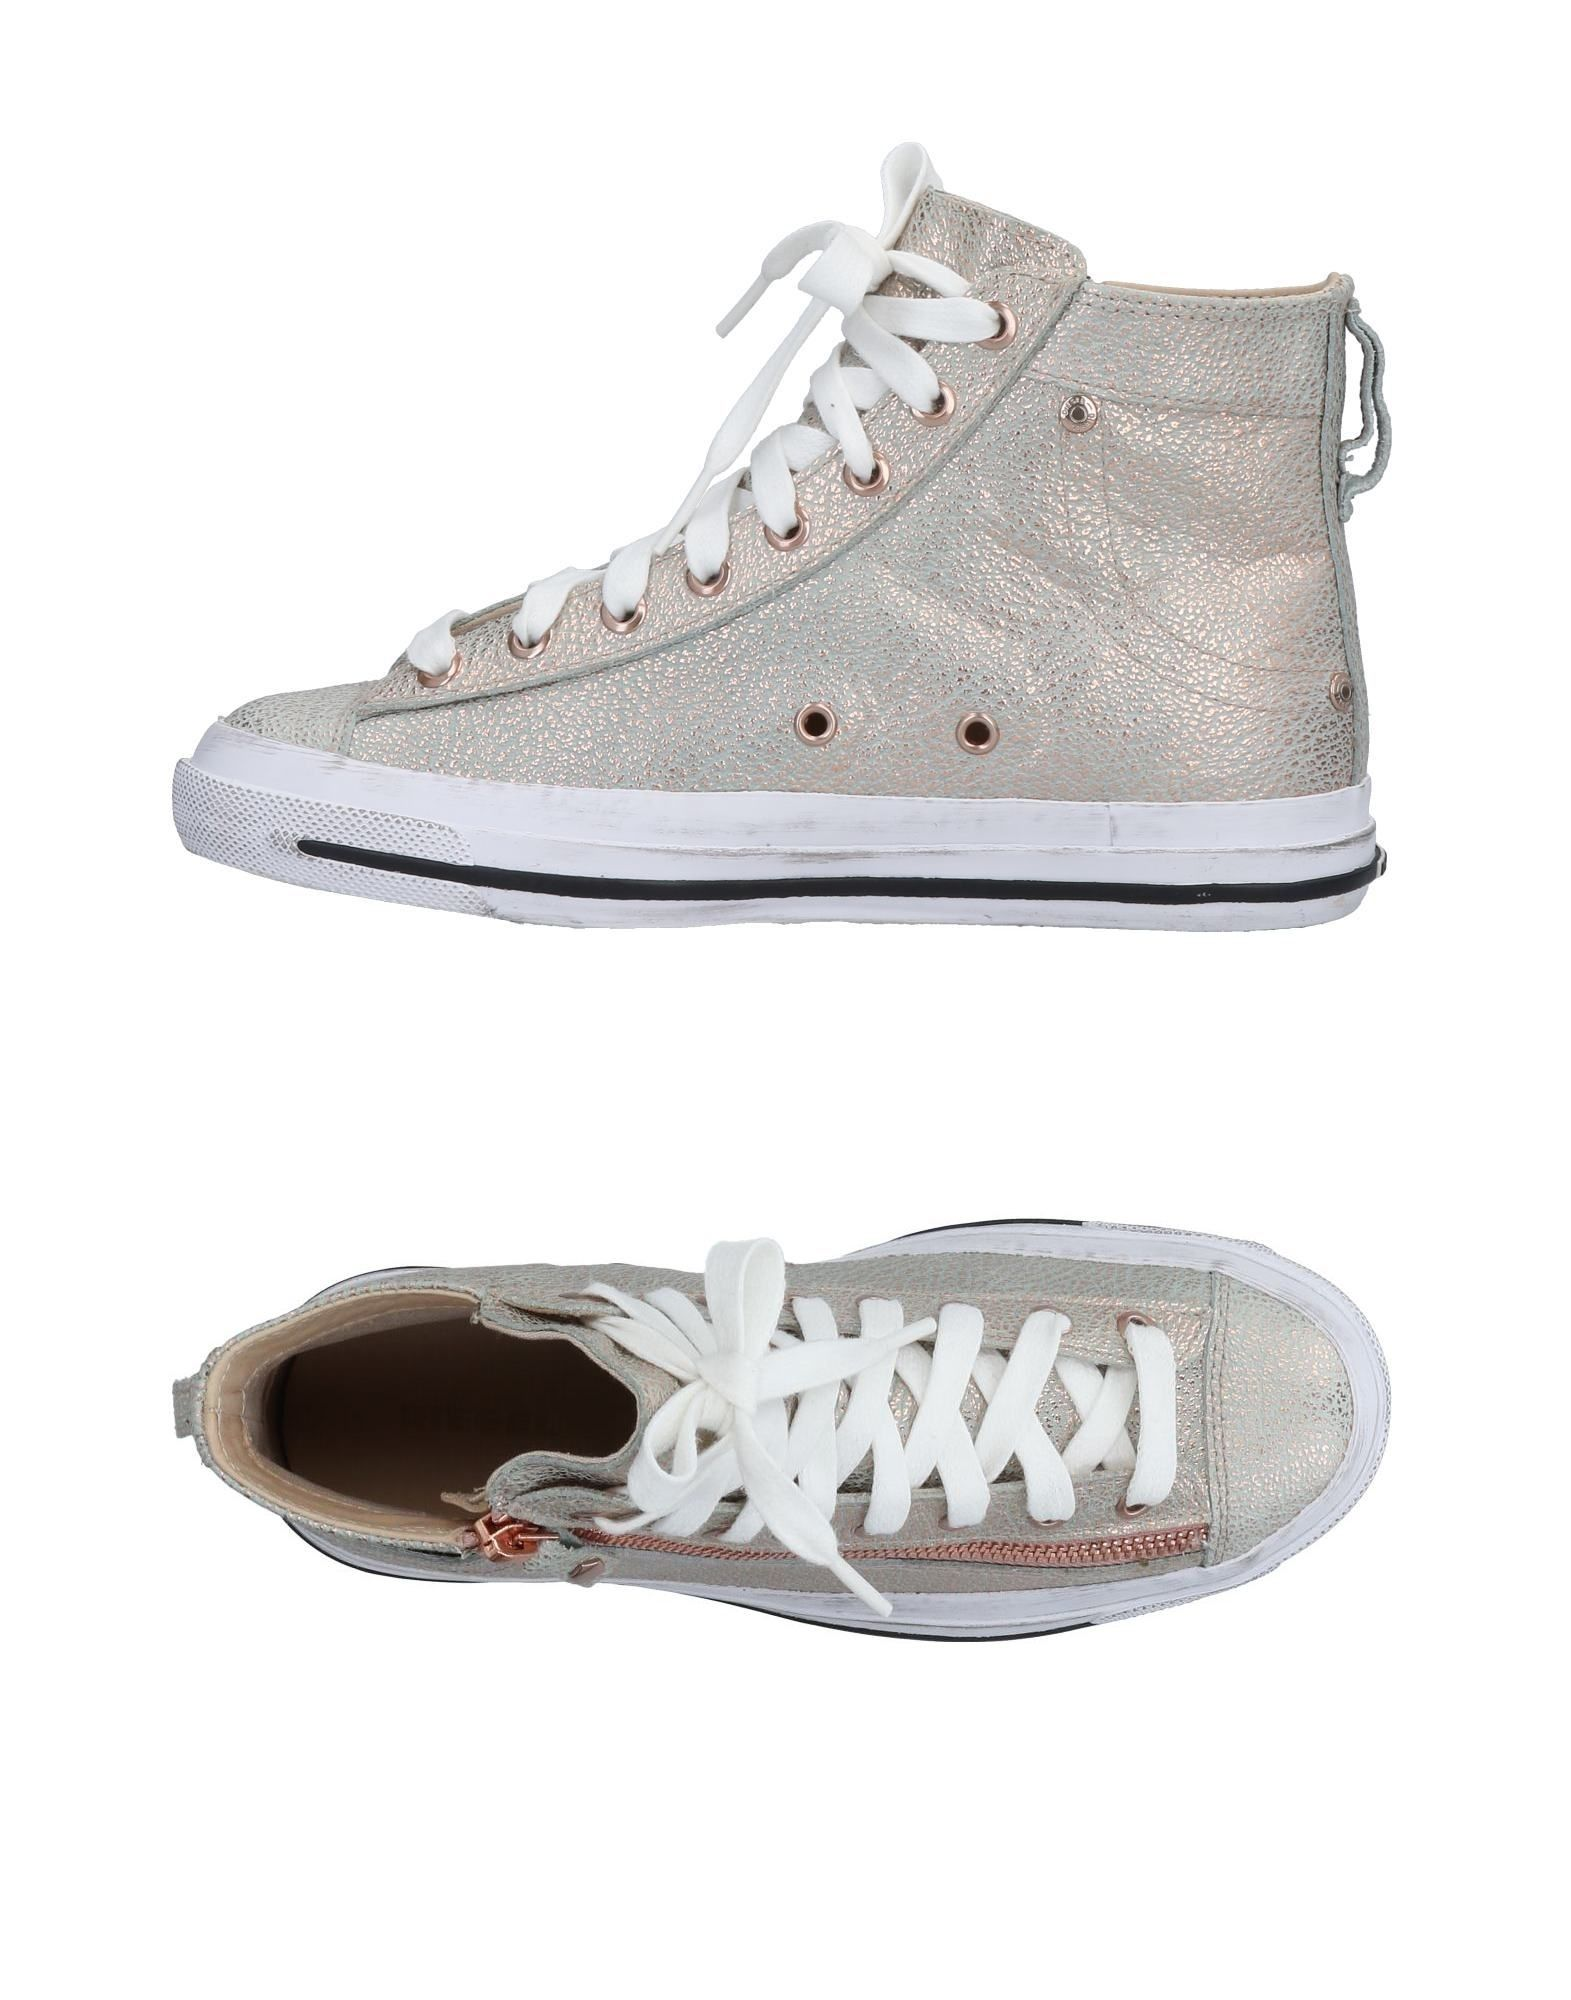 A buon mercato Sneakers Diesel Donna - 11476606EP